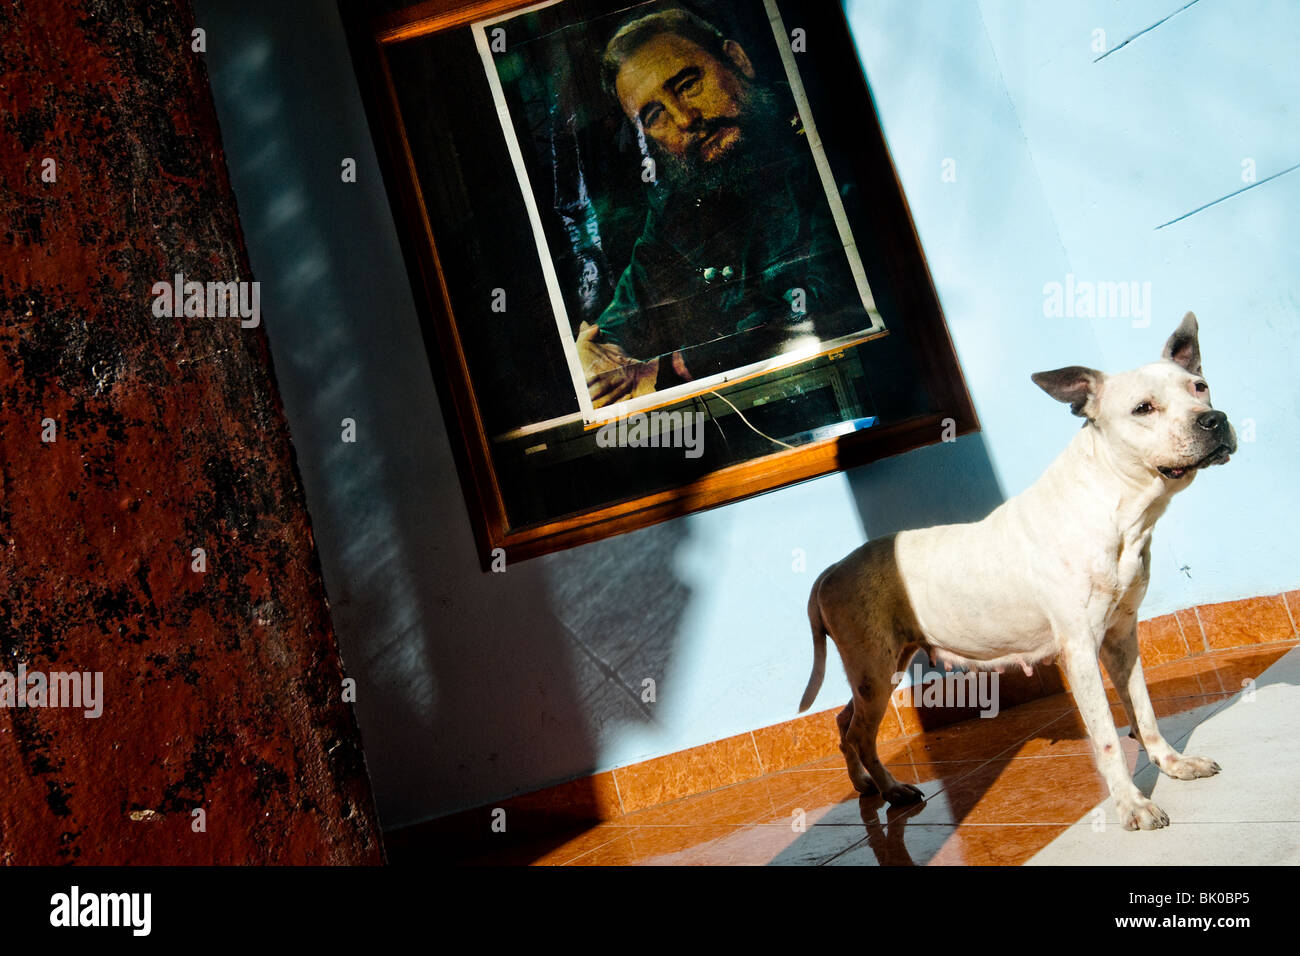 A white pit bull terrier stands in front of a portrait of Fidel Castro, hung on the wall in Havana, Cuba. - Stock Image